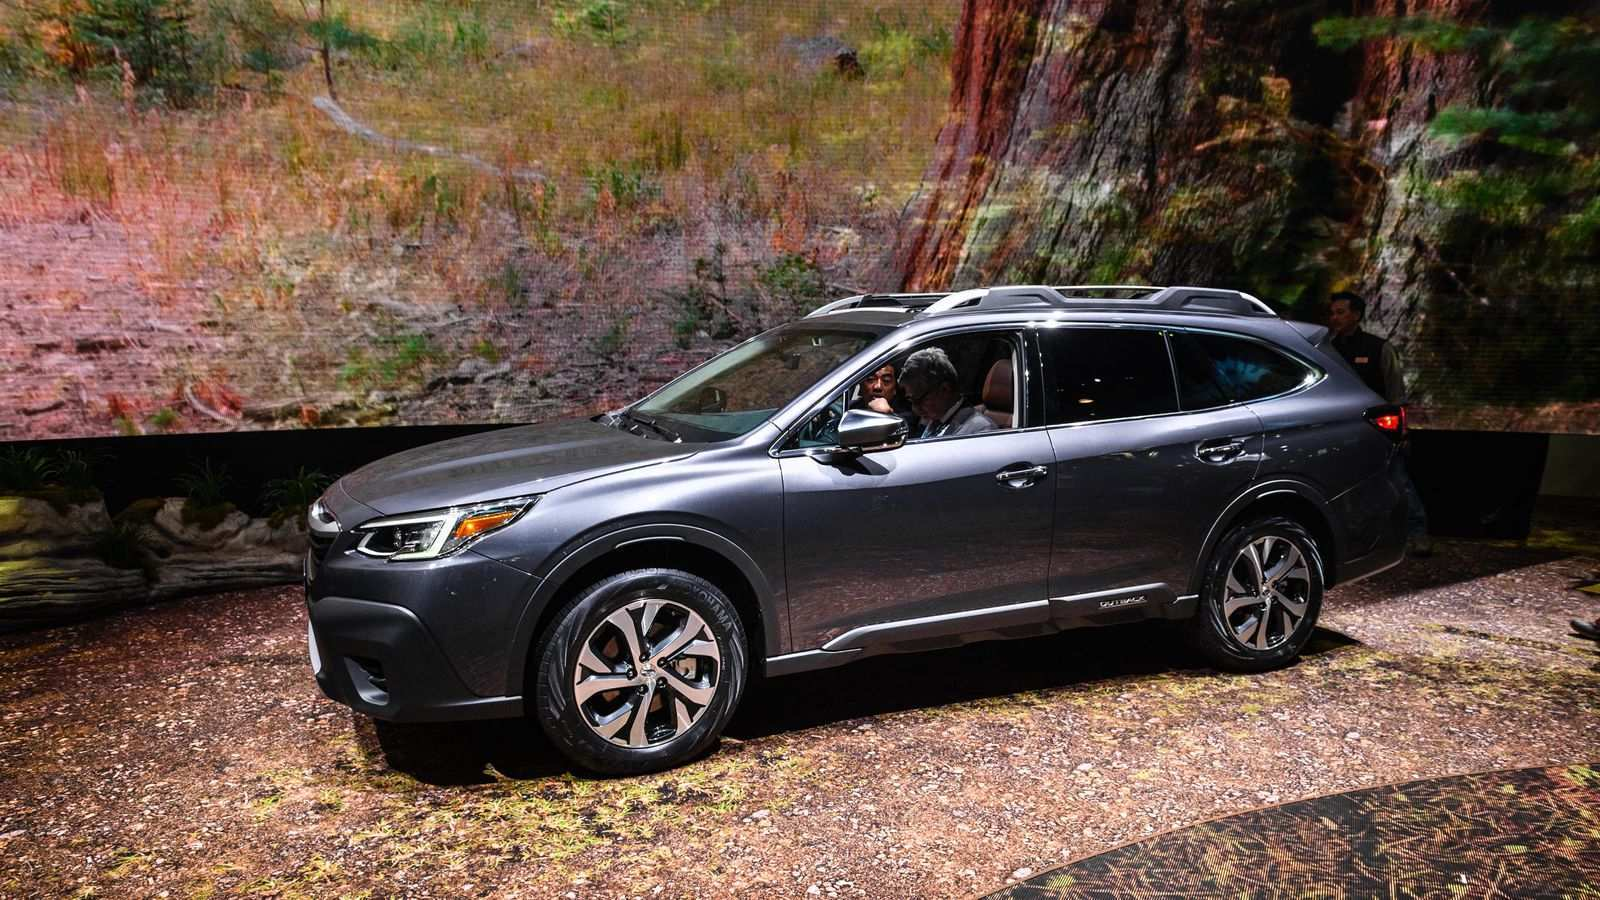 87 The Best 2020 Subaru Outback Images